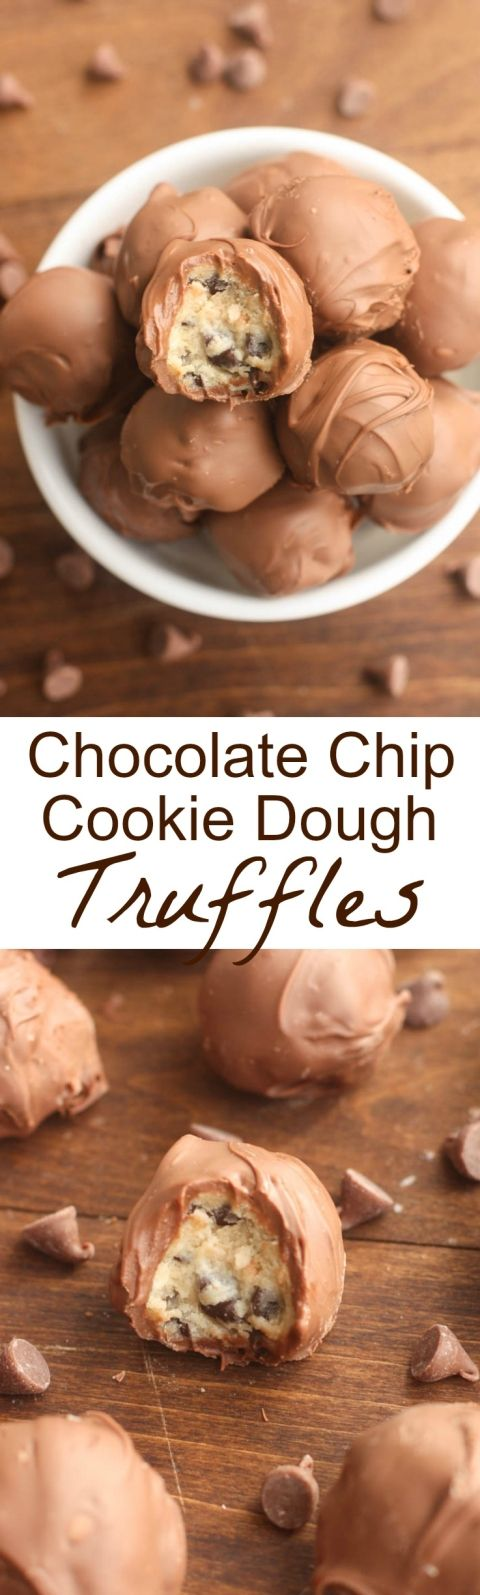 Chocolate Chip Cookie Dough Truffles - A simple egg-free cookie dough dipped in melted chocolate! These bite-size treats are easy and delicious! | Tastes Better From Scratch(Gingerbread Bake Oatmeal)